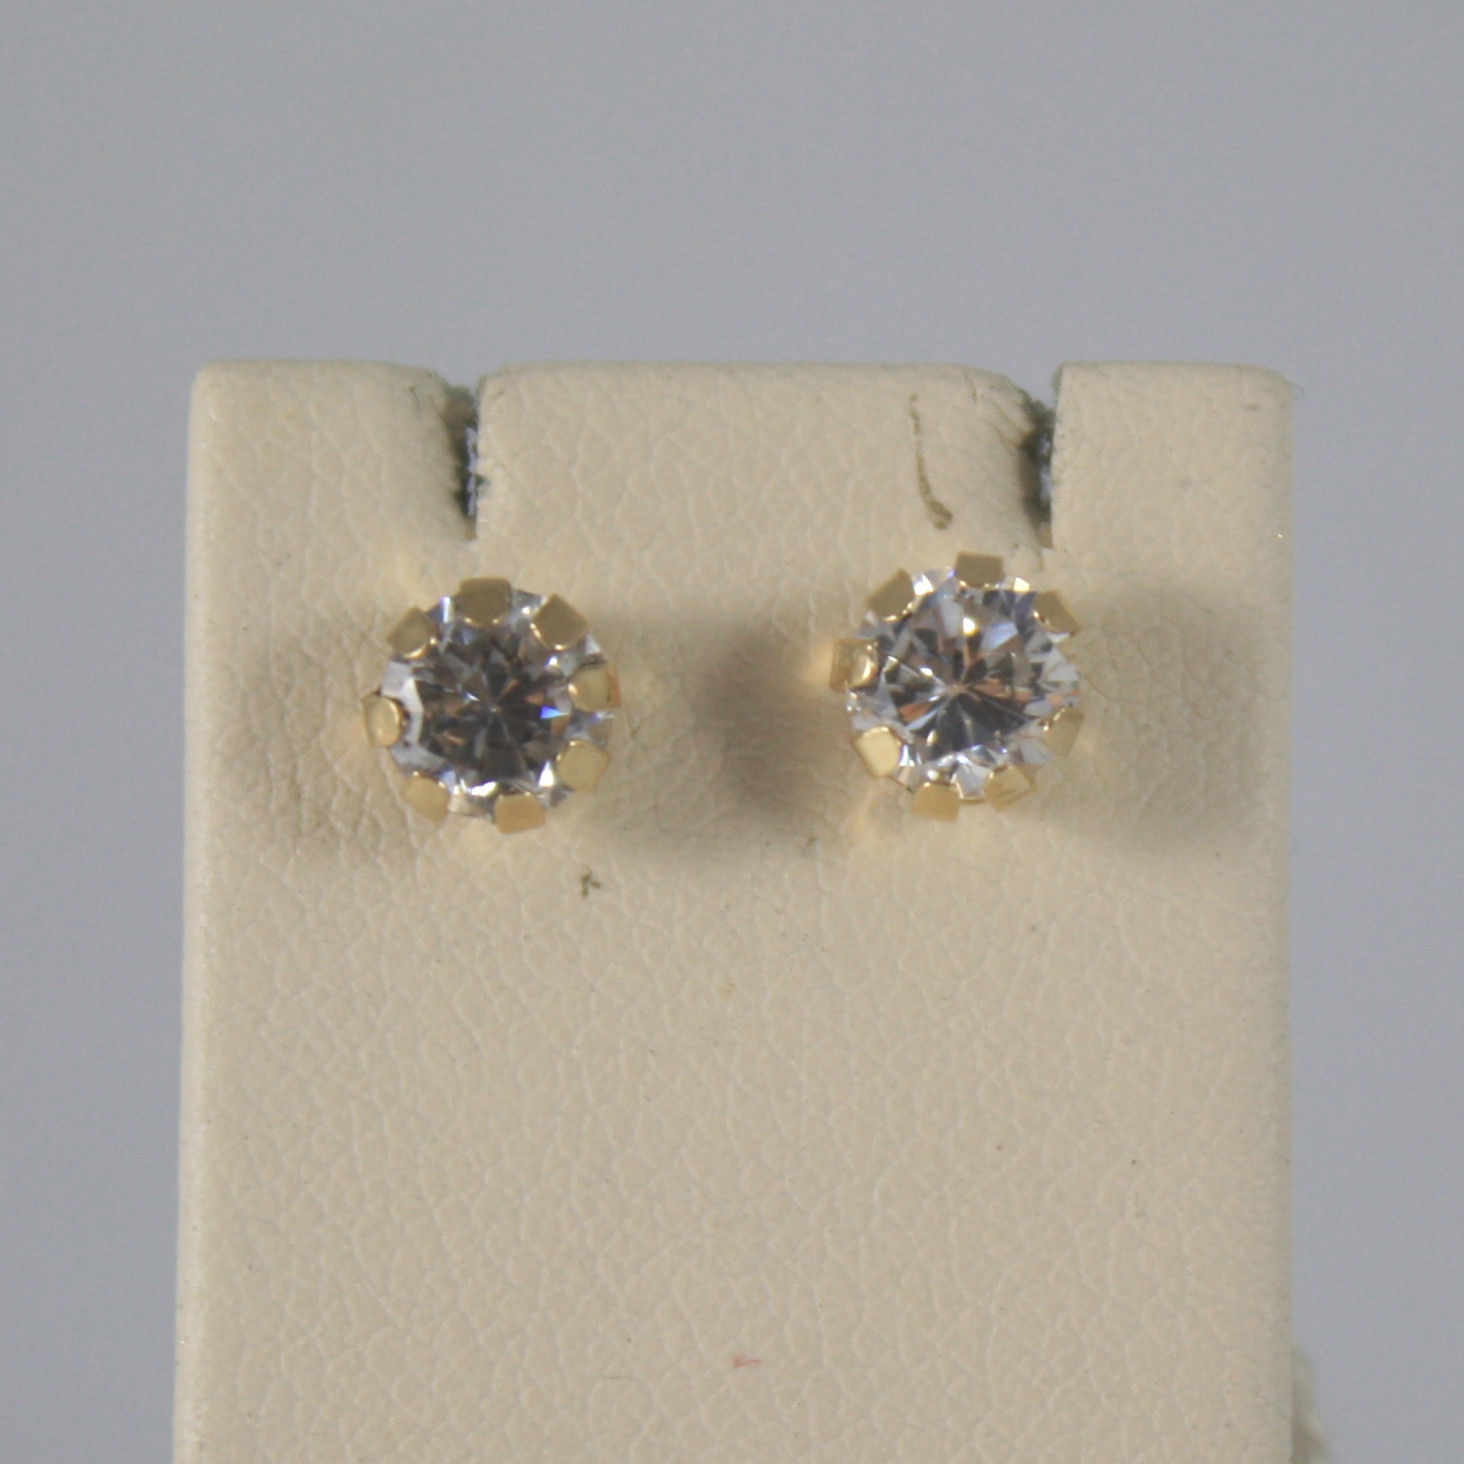 SOLID 18KT. YELLOW GOLD EARRINGS, WITH ZIRCONIA, WIDTH 0,2 IN MADE IN ITALY.